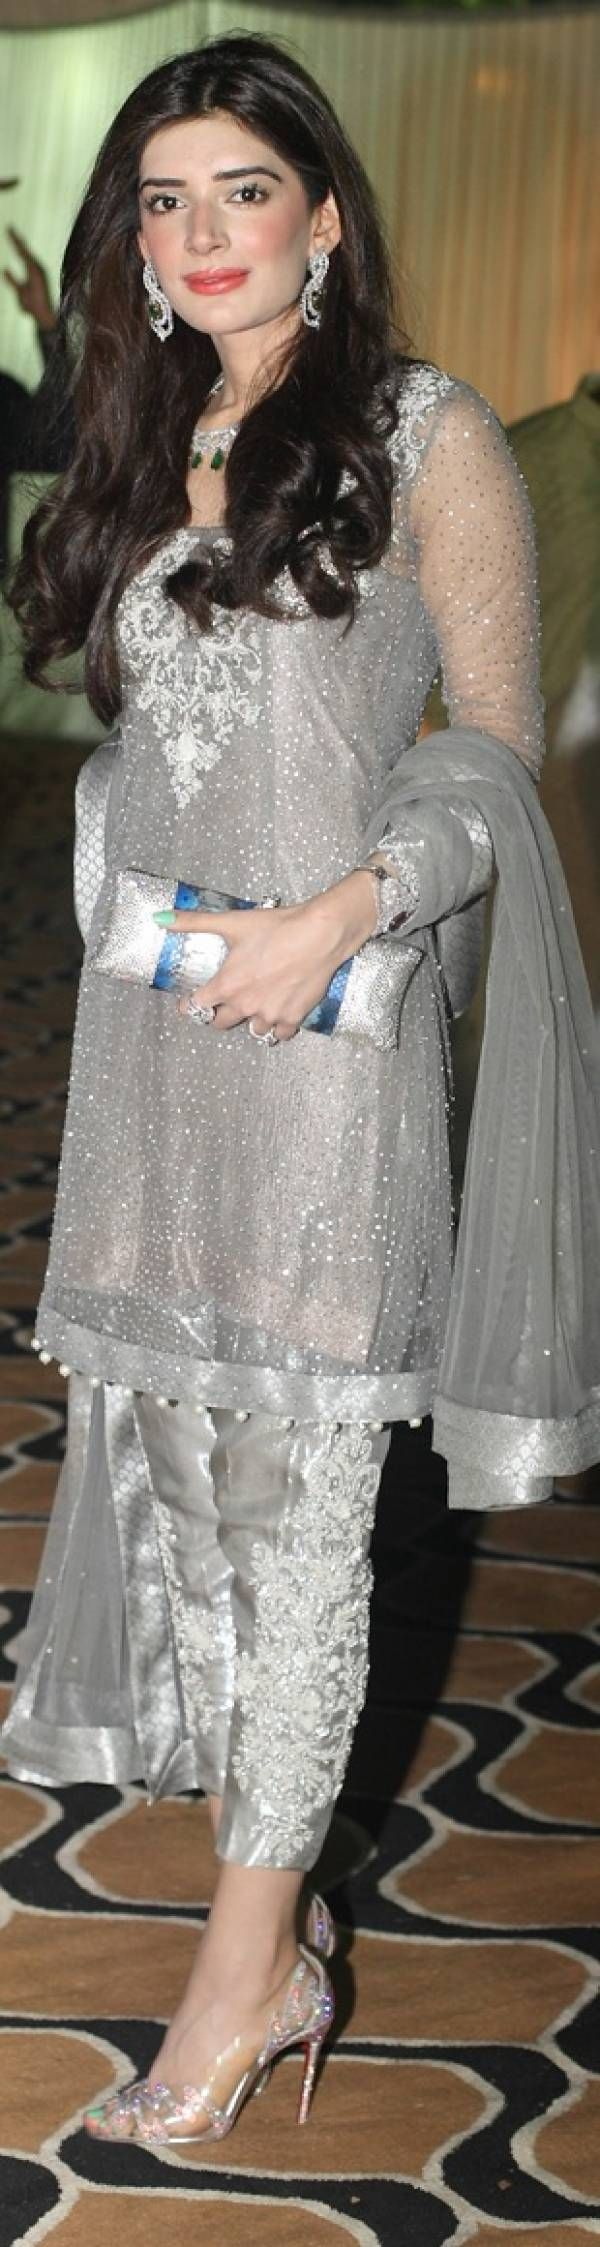 The Mischa Barton lookalike looks elegant as ever in a silver Elan outfit, accessorized with stunning bling and en trend transparent Loubs.